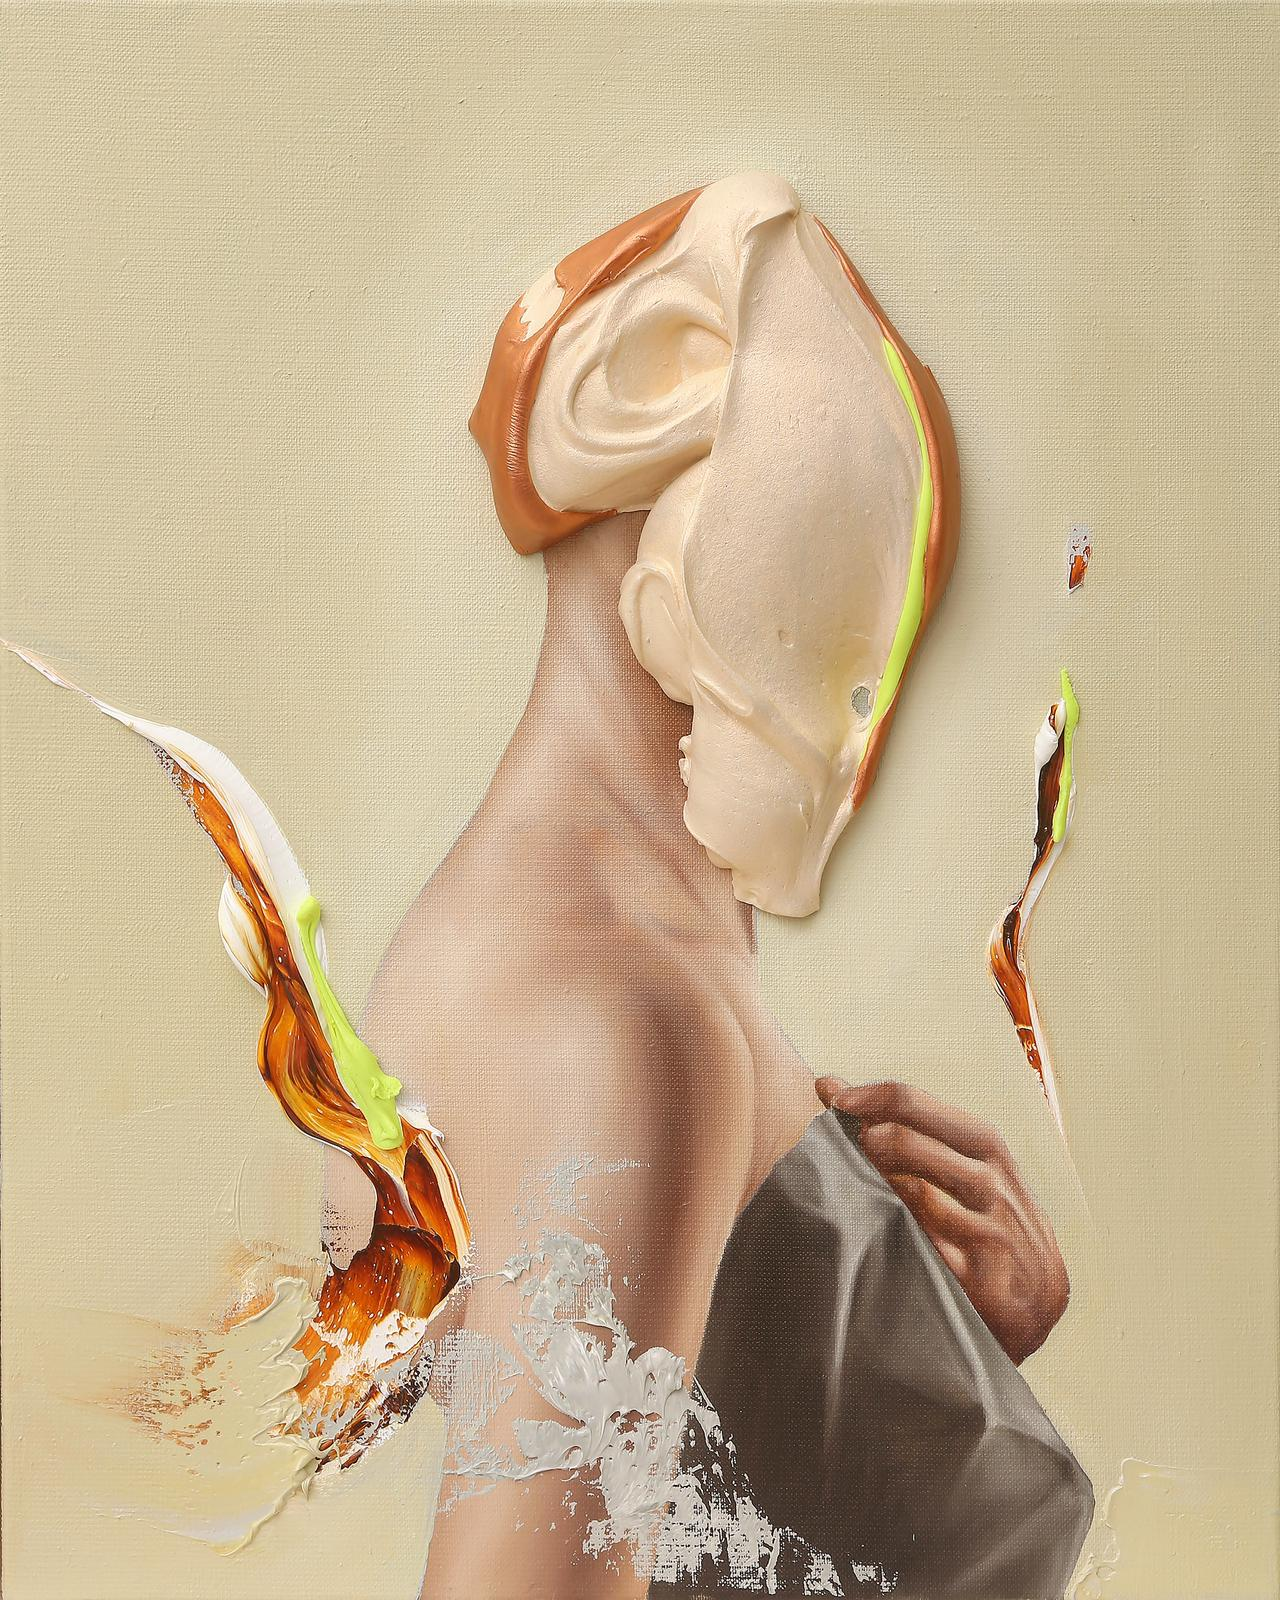 Untitled (From The Side) by Fabio La Fauci